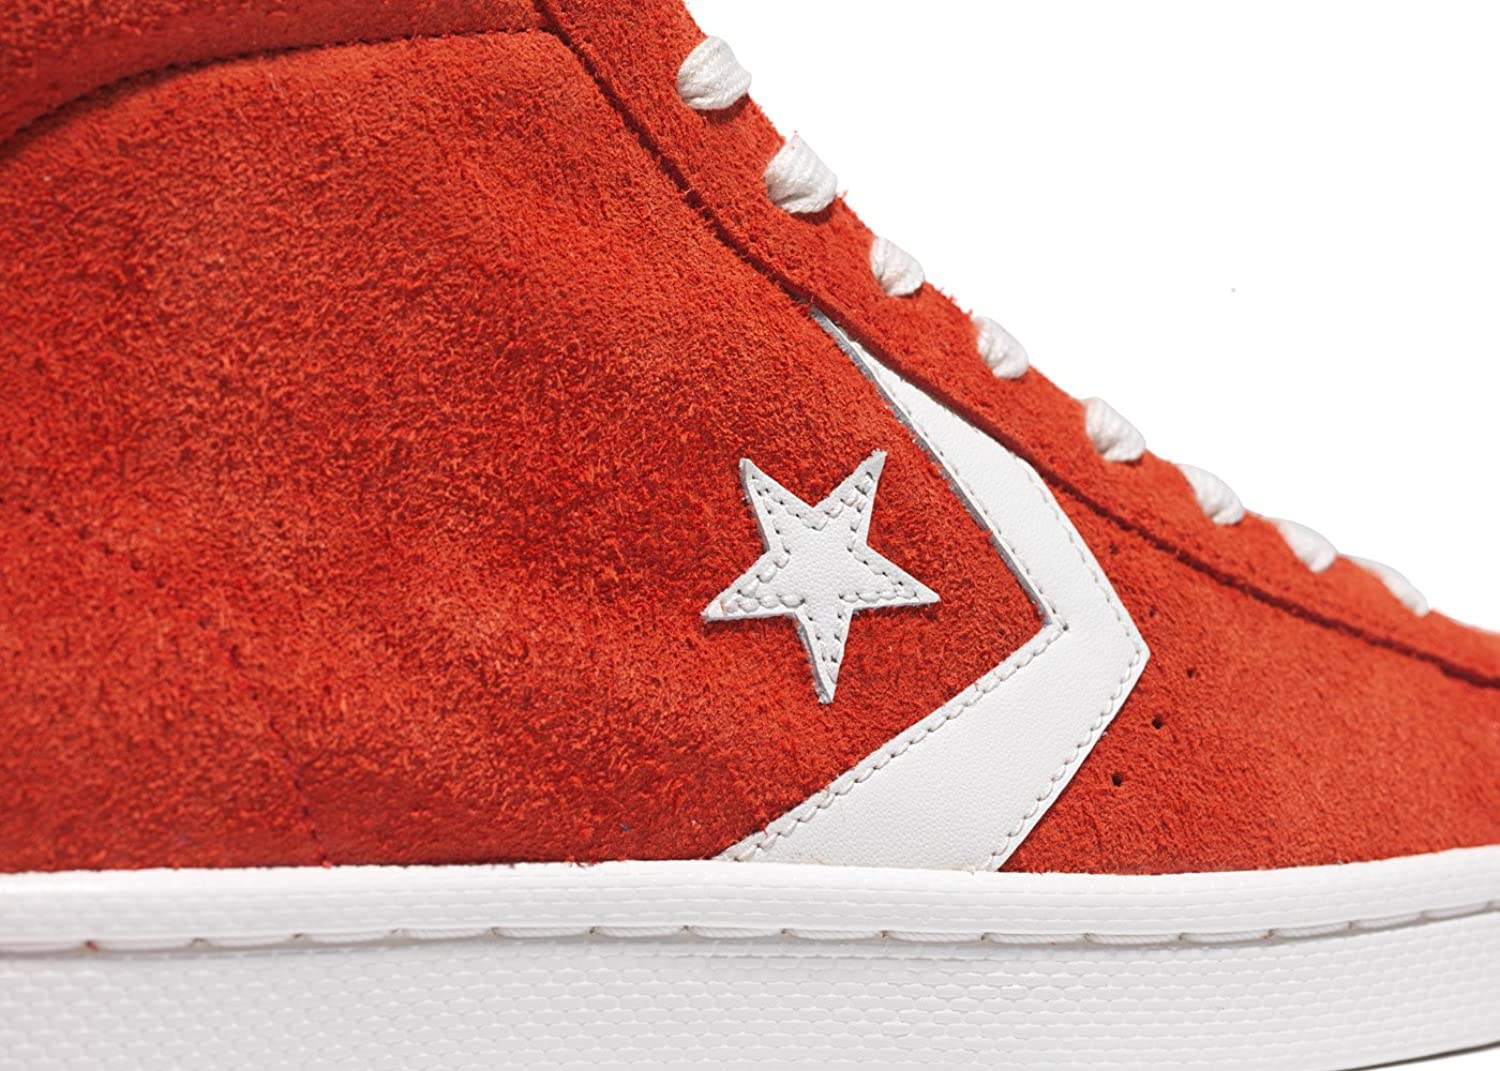 Converse Pro Leather 76 Mid Vintage Suede (44EUR - 10US, Fire Red)